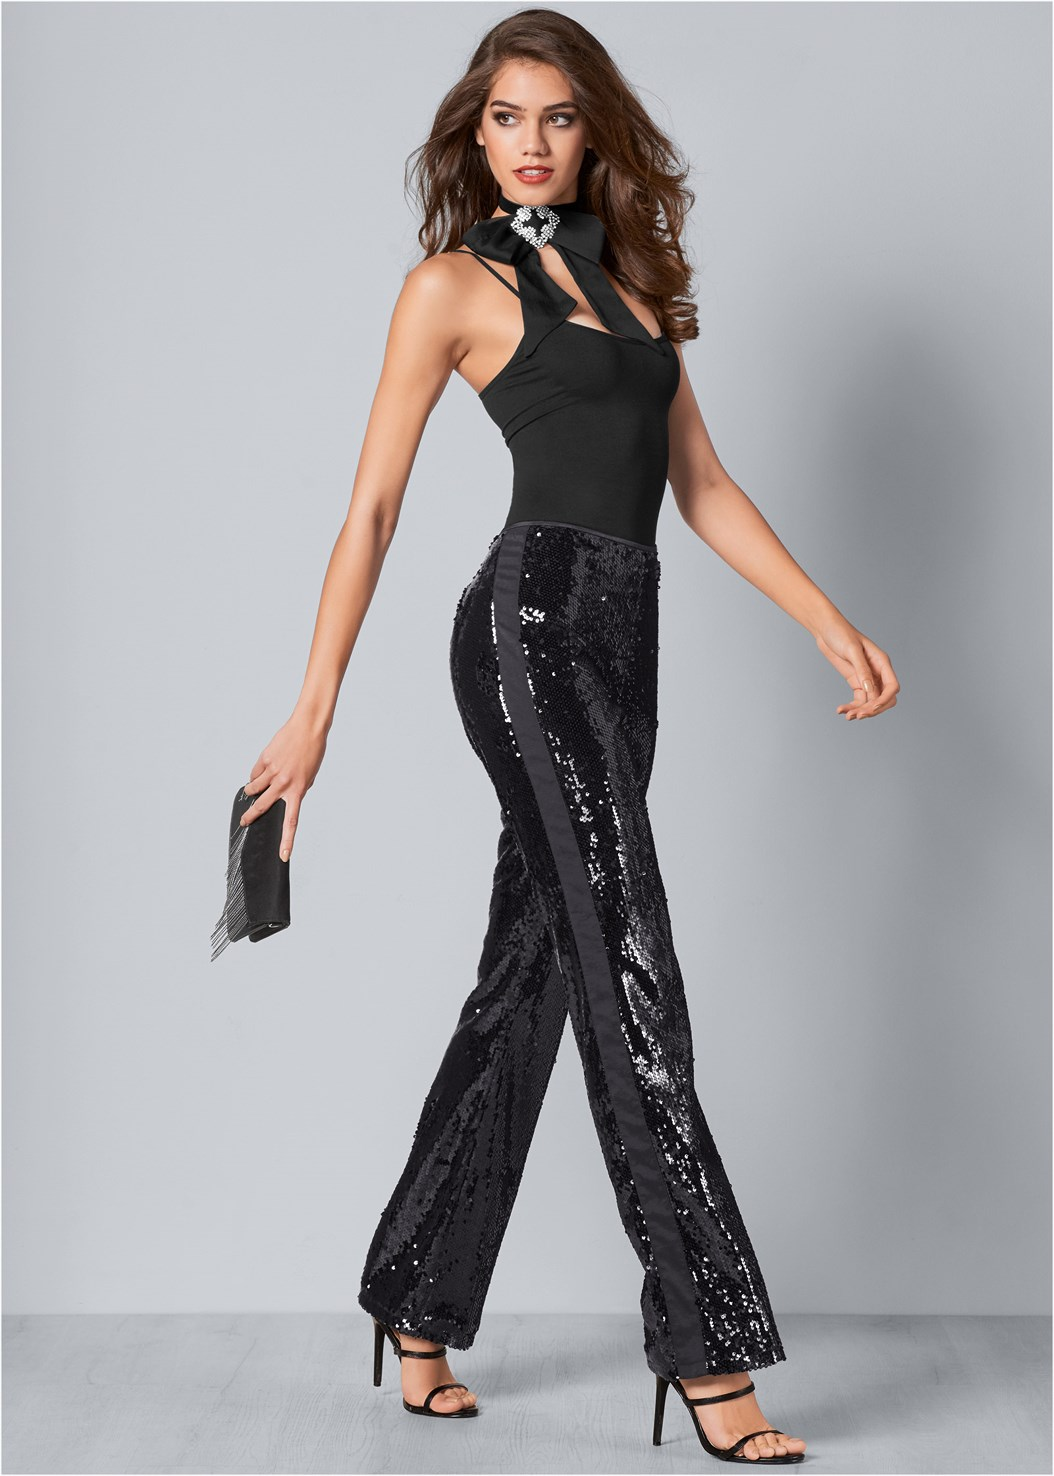 Sequin Pants,Seamless Cami,High Heel Strappy Sandals